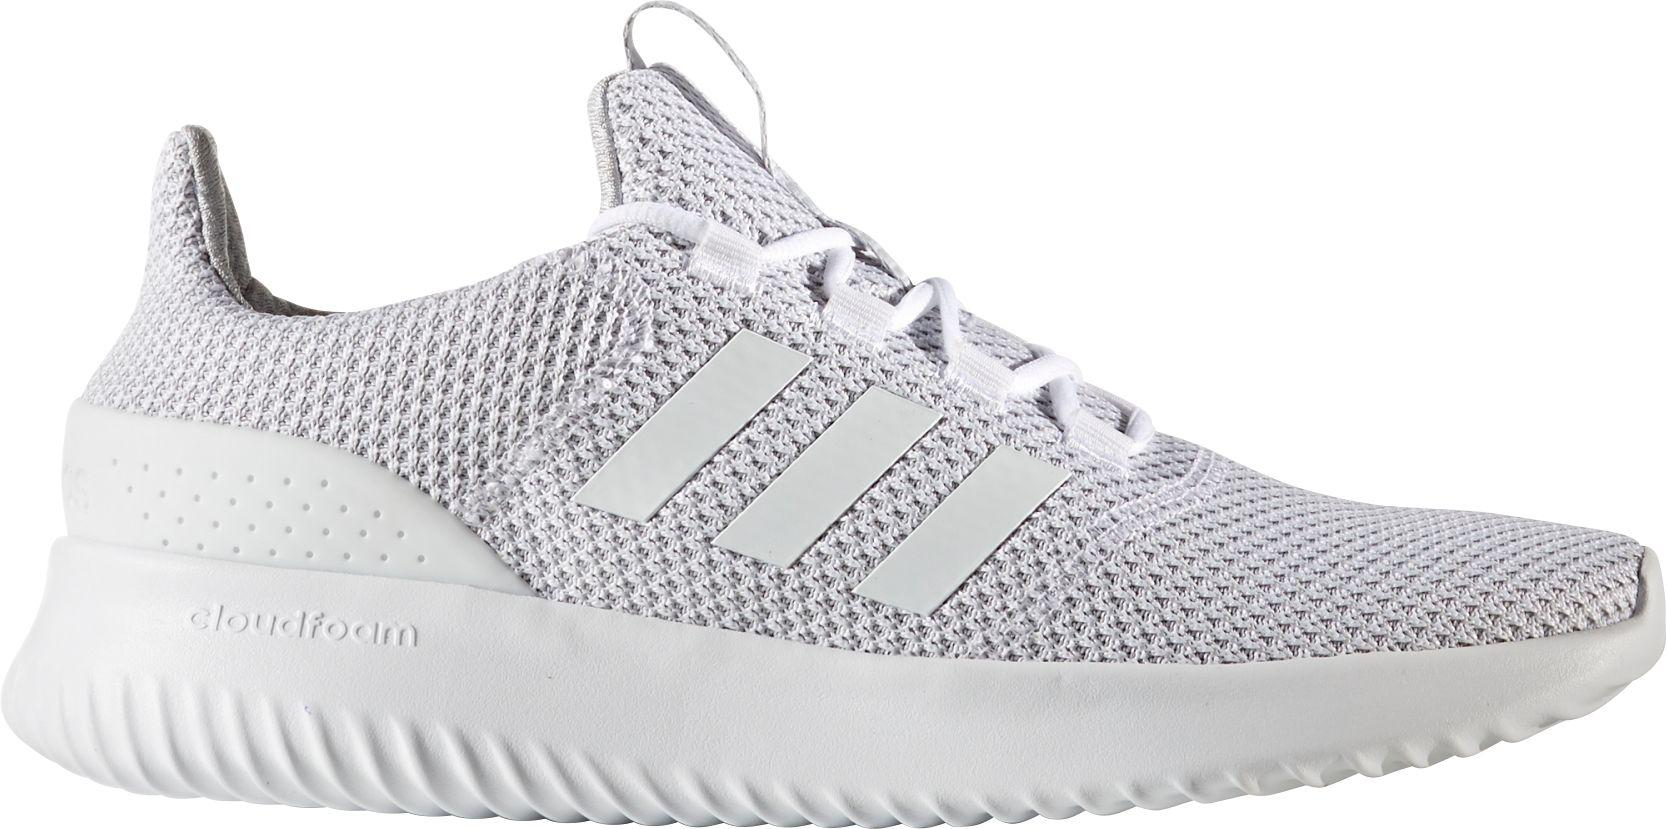 Lyst - adidas Cloudfoam Ultimate Shoes in White for Men fa6c4607e